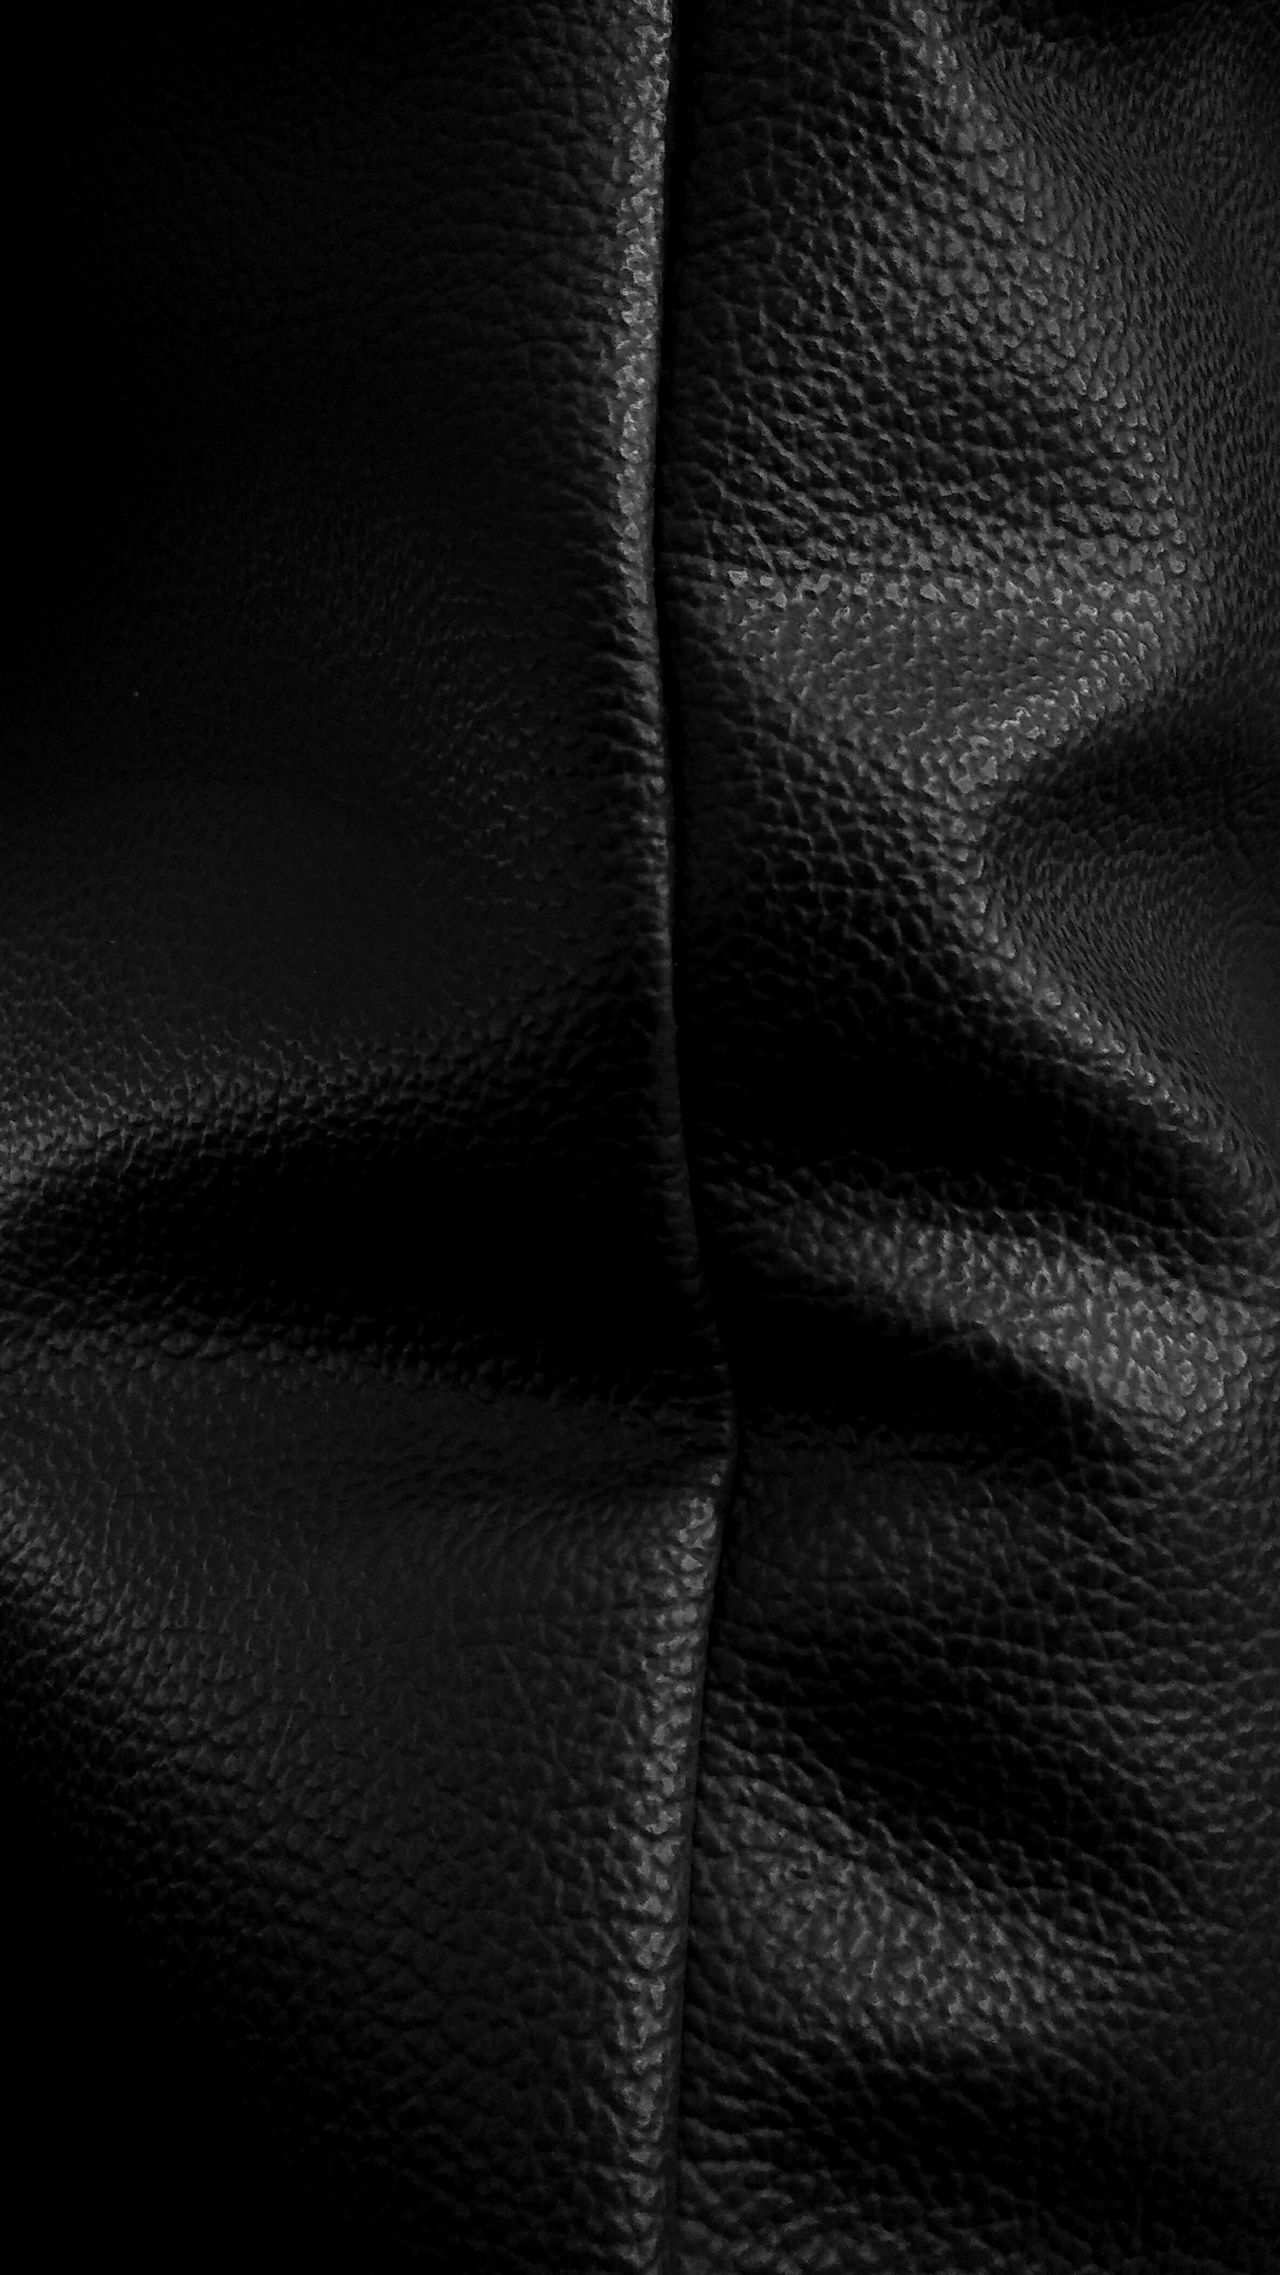 Leather texture Backgrounds Full Frame Leather Animal Skin Textured  Material Pattern Blackandwhite Photography Black Background Textured  Black & White Blackandwhite EyeEm Best Shots EyeEm Gallery Simplicity